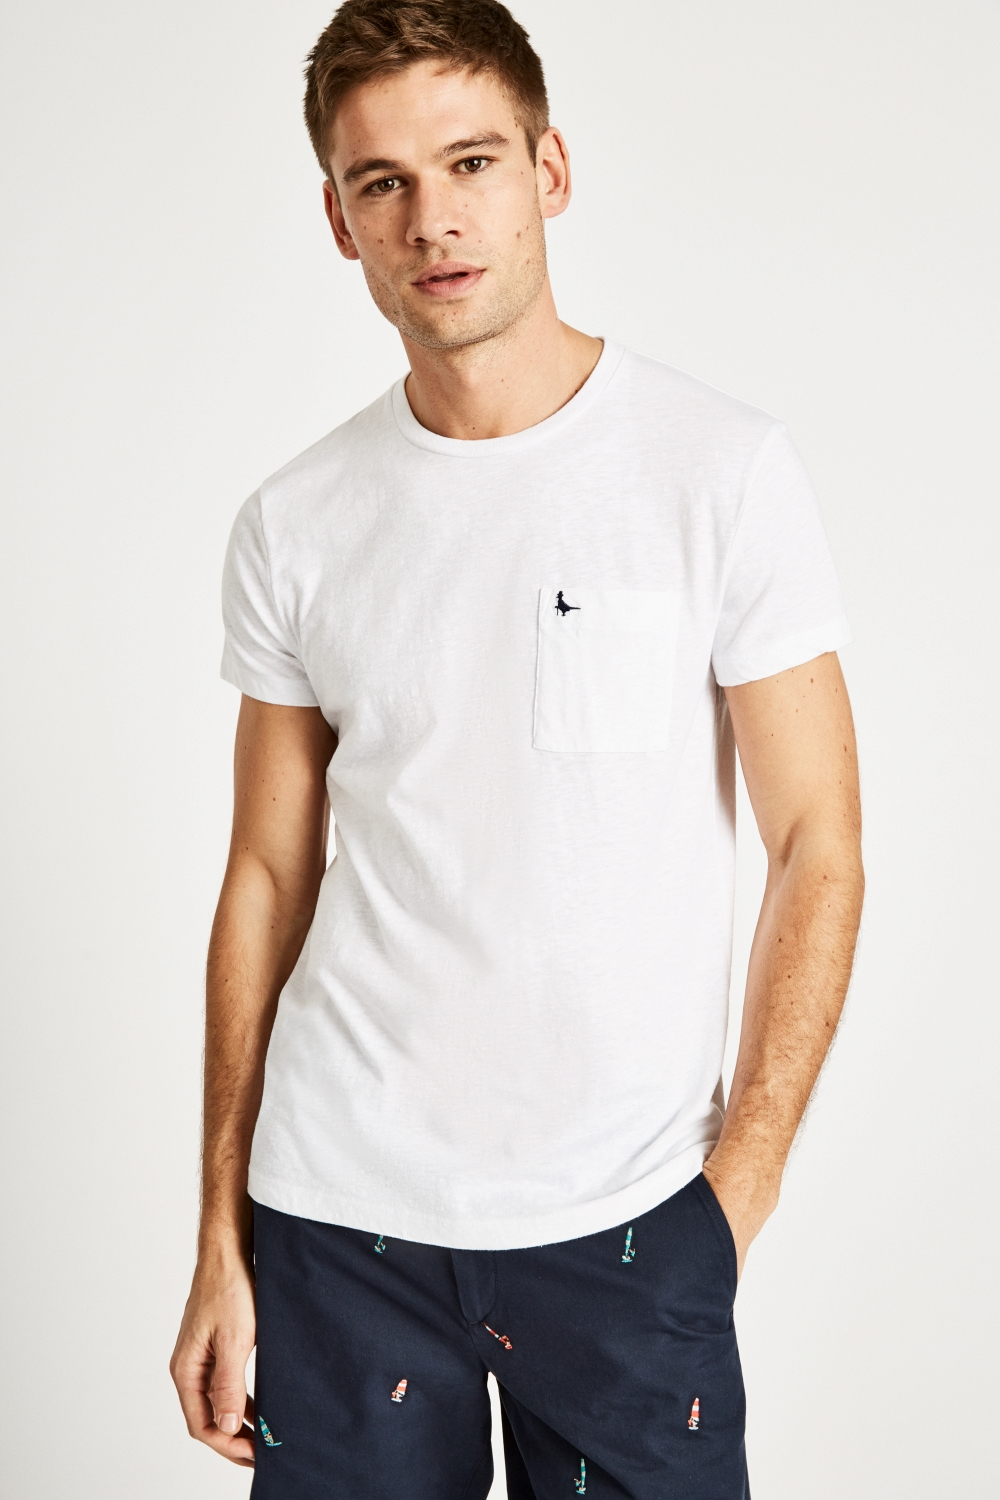 Jack Wills White AYLEFORD POCKET T-SHIRT